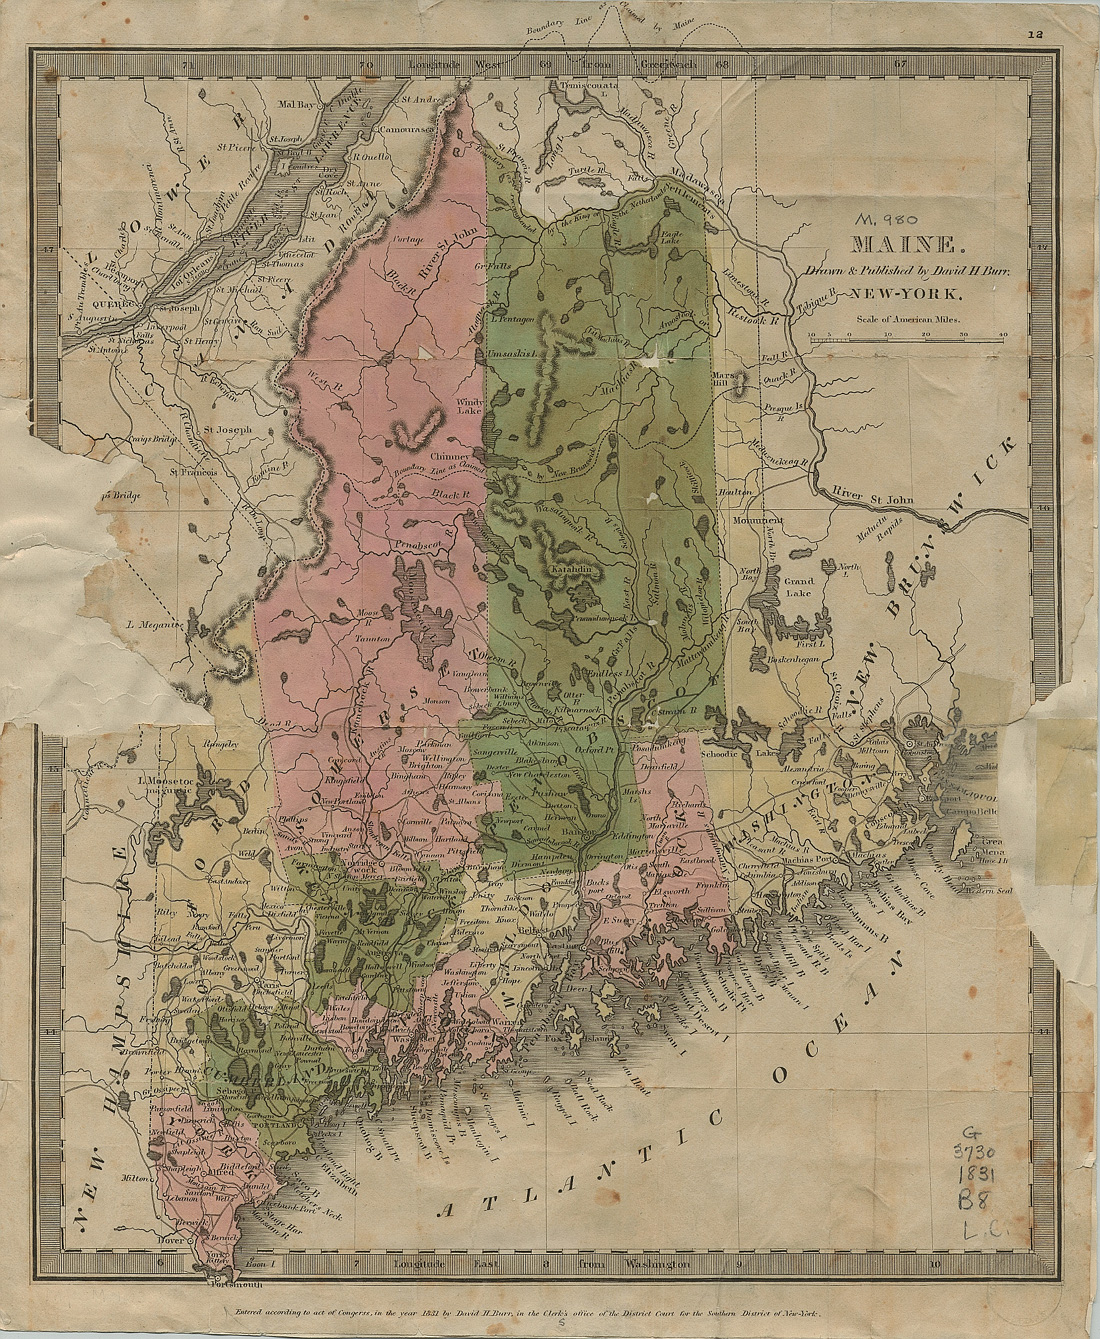 1831 Map of Maine by David H. Burr